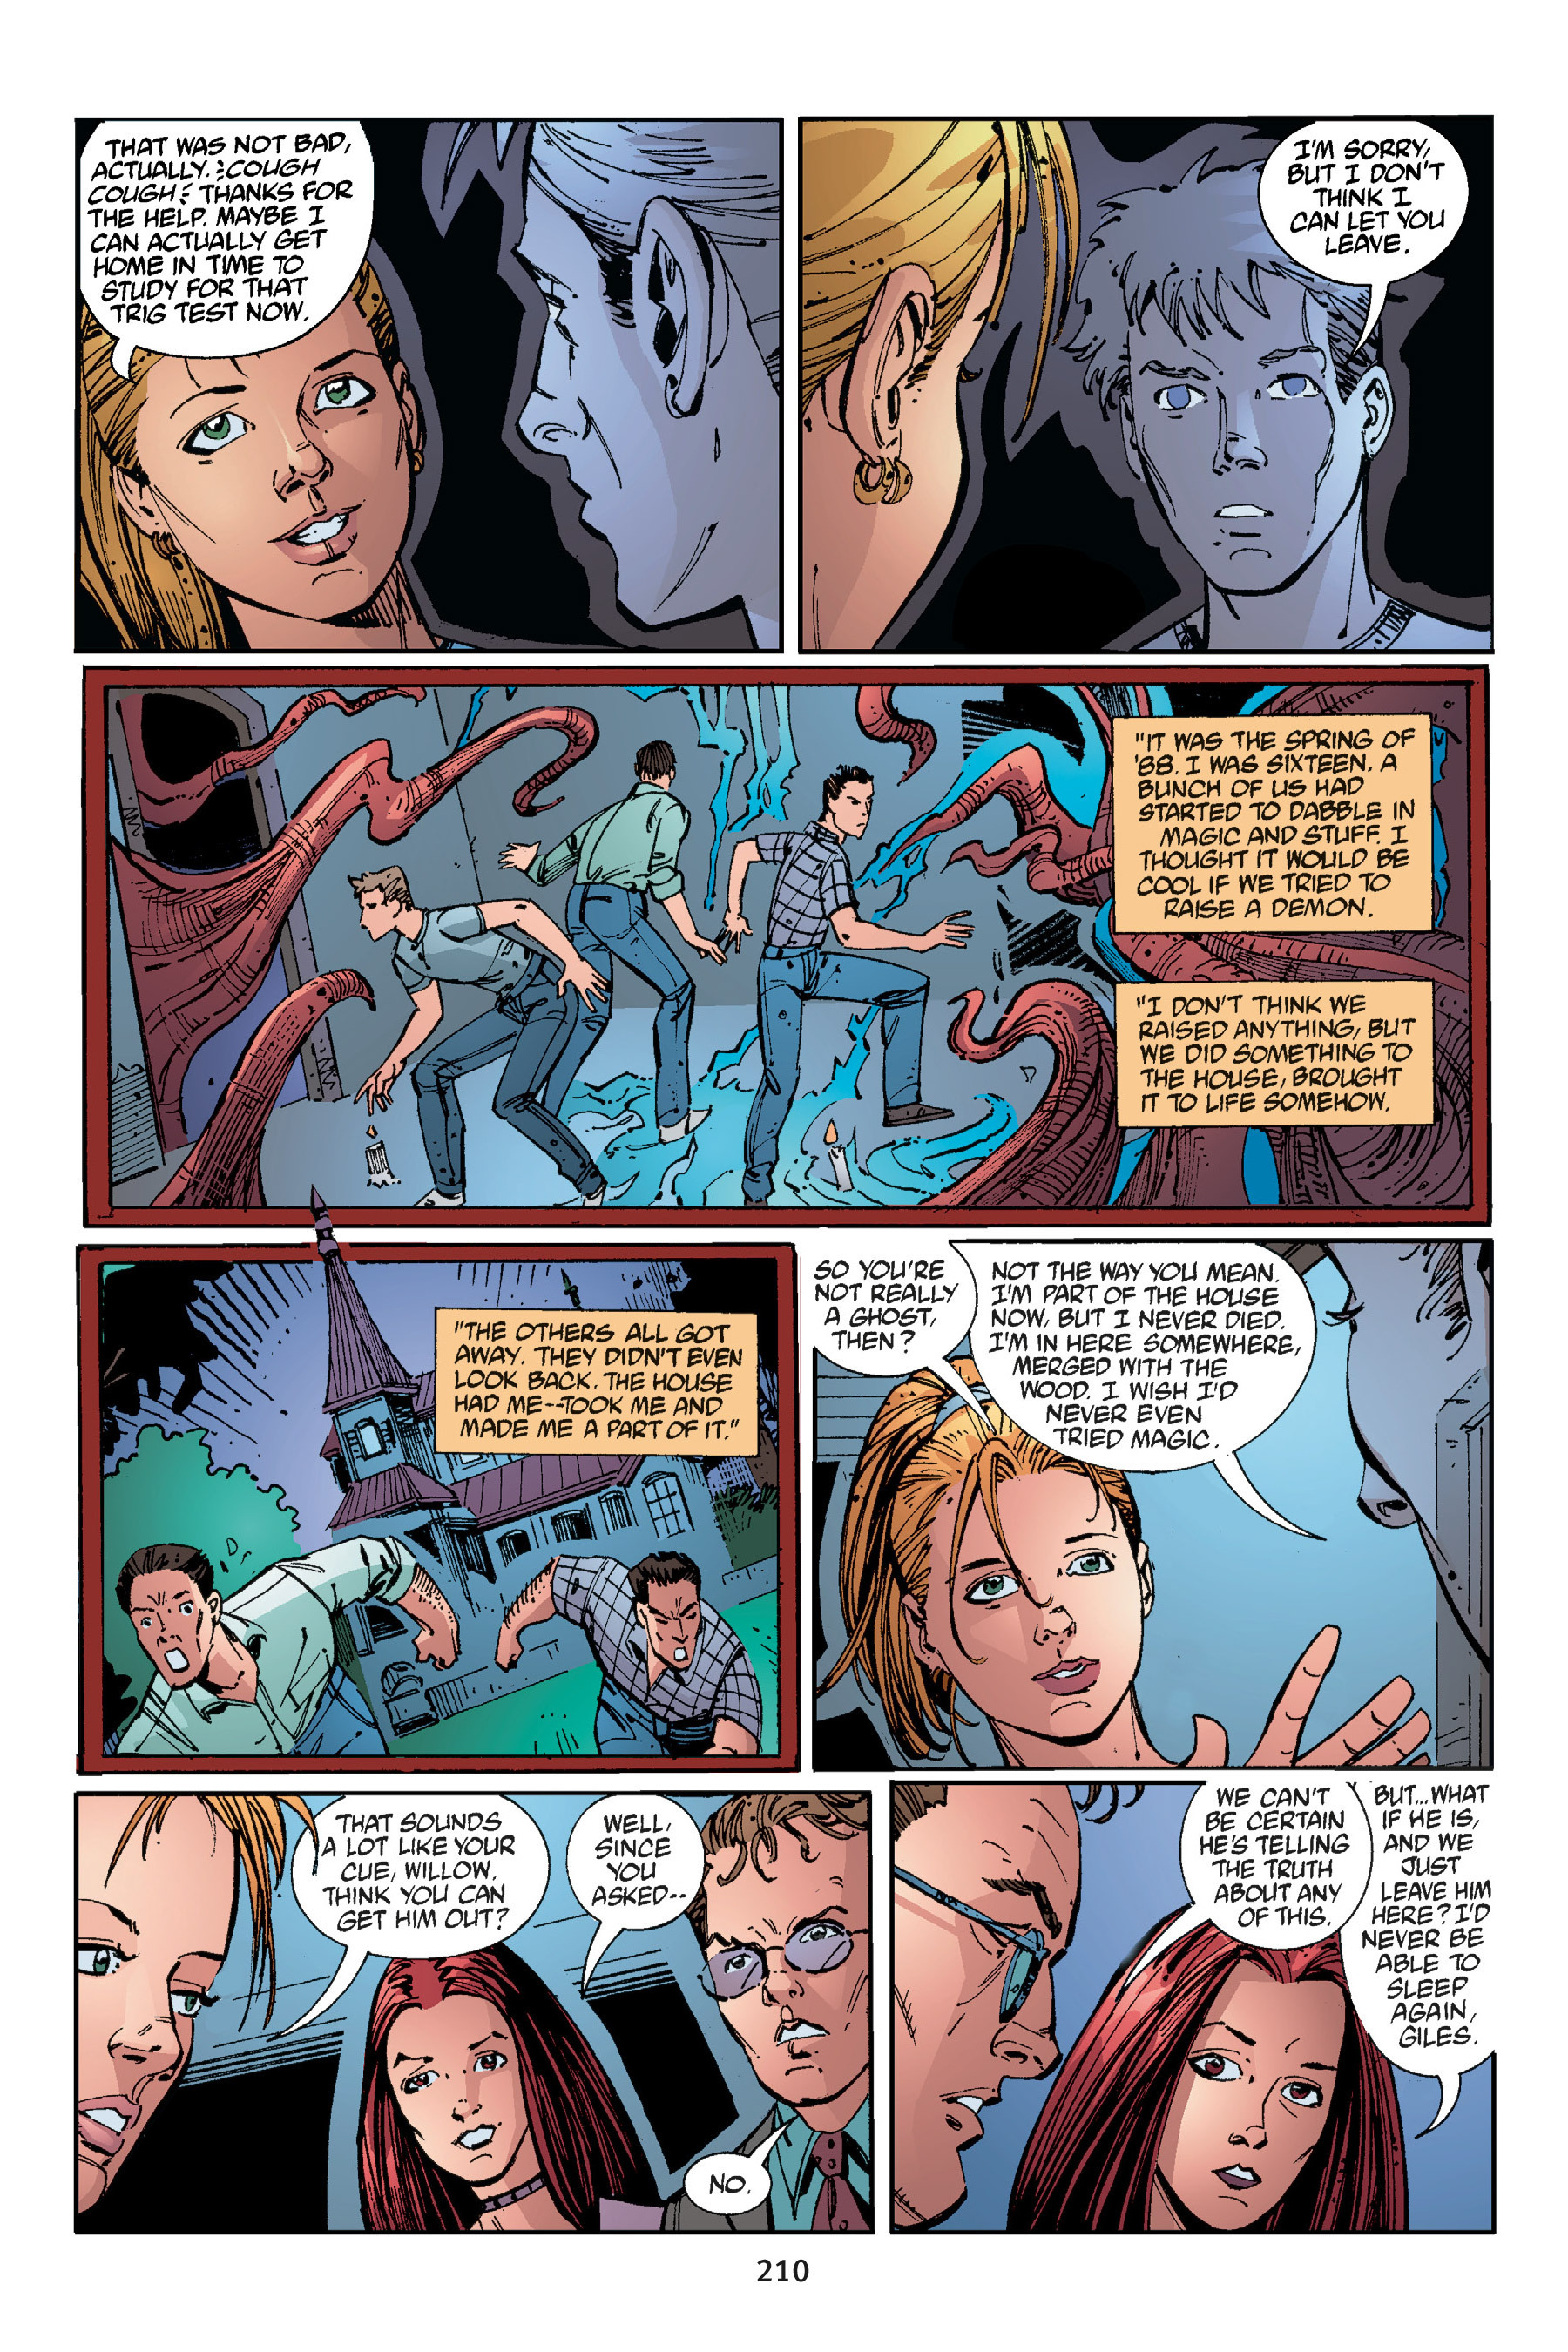 Read online Buffy the Vampire Slayer: Omnibus comic -  Issue # TPB 3 - 203